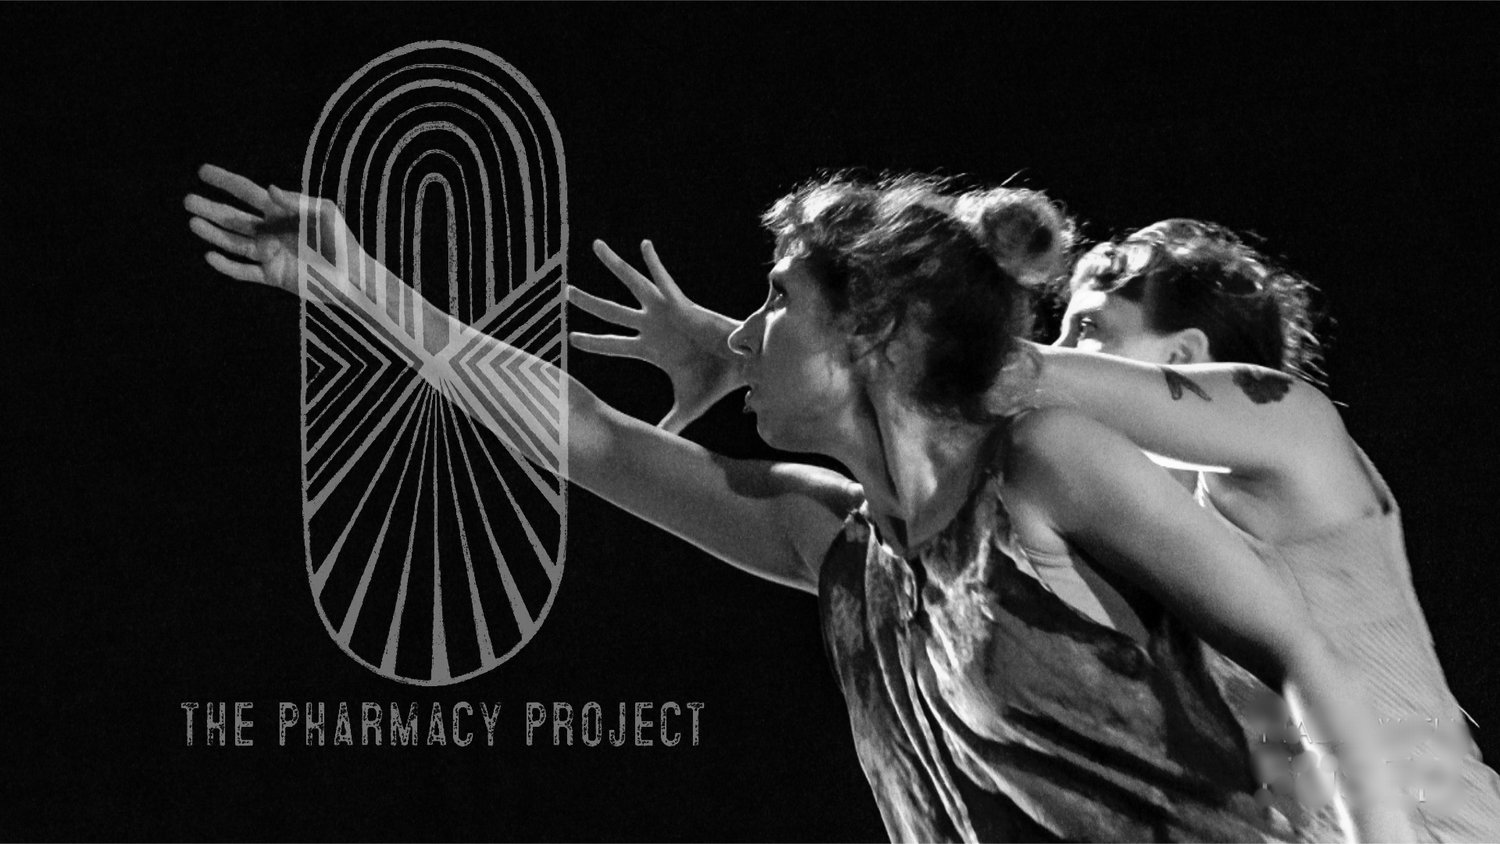 THE PHARMACY PROJECT